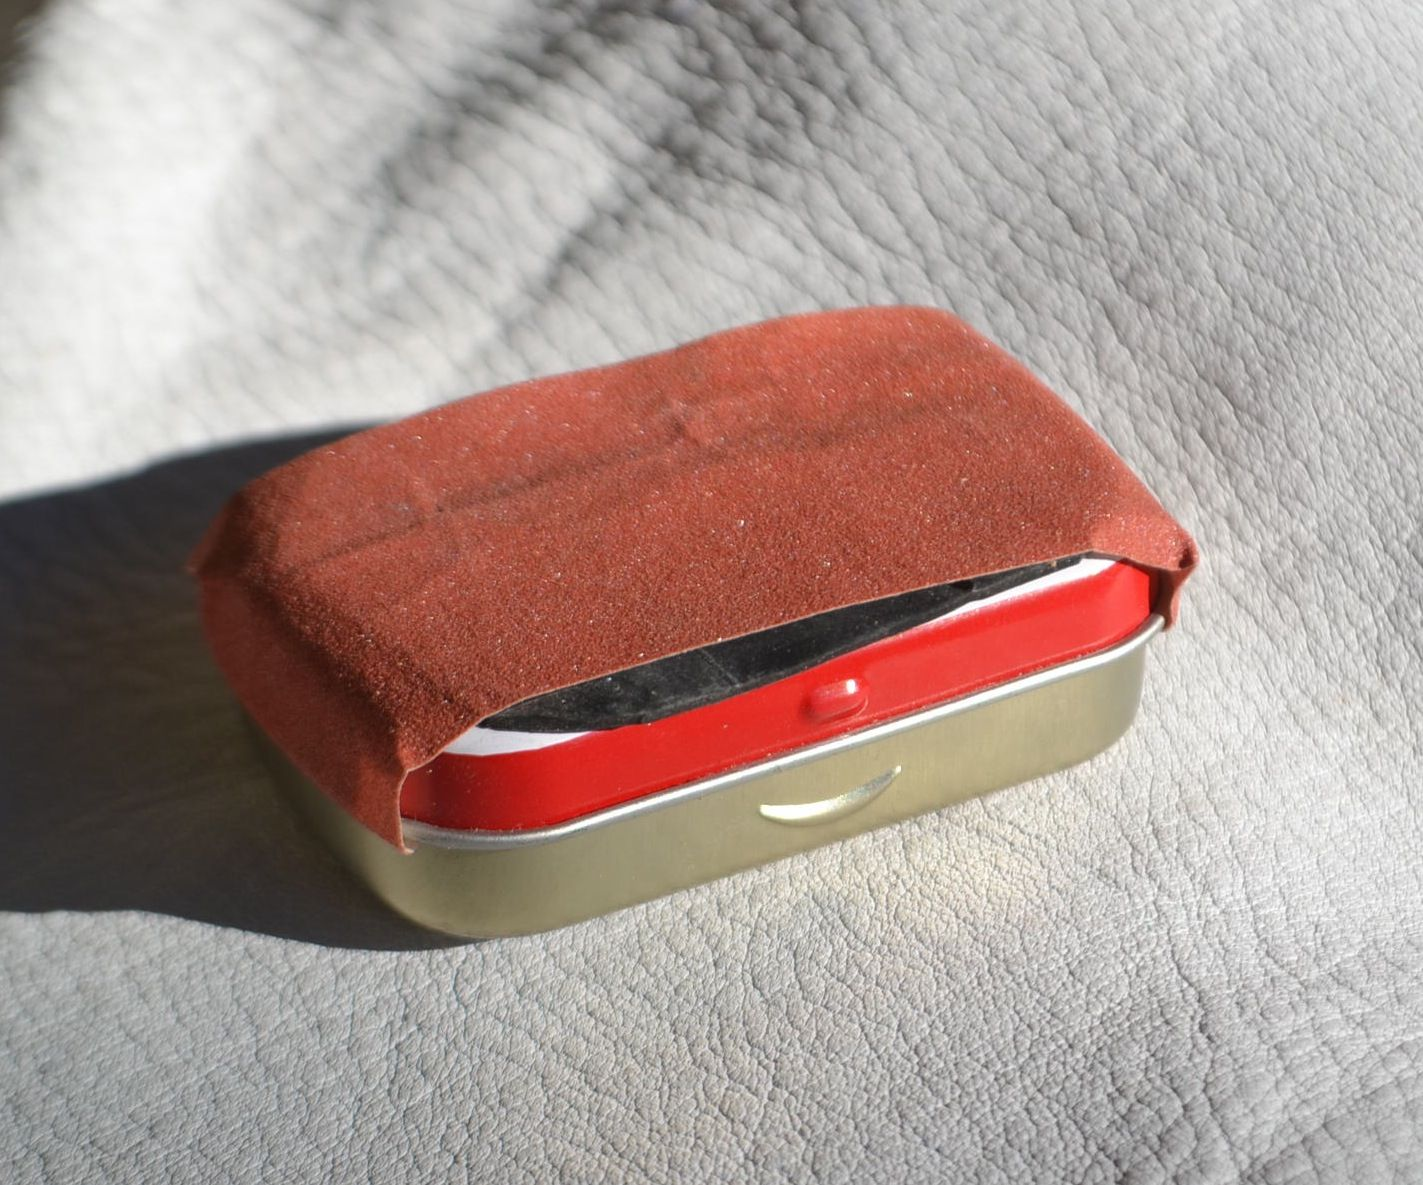 ⚙ALTOIDS SANDING PAD/KIT⚙